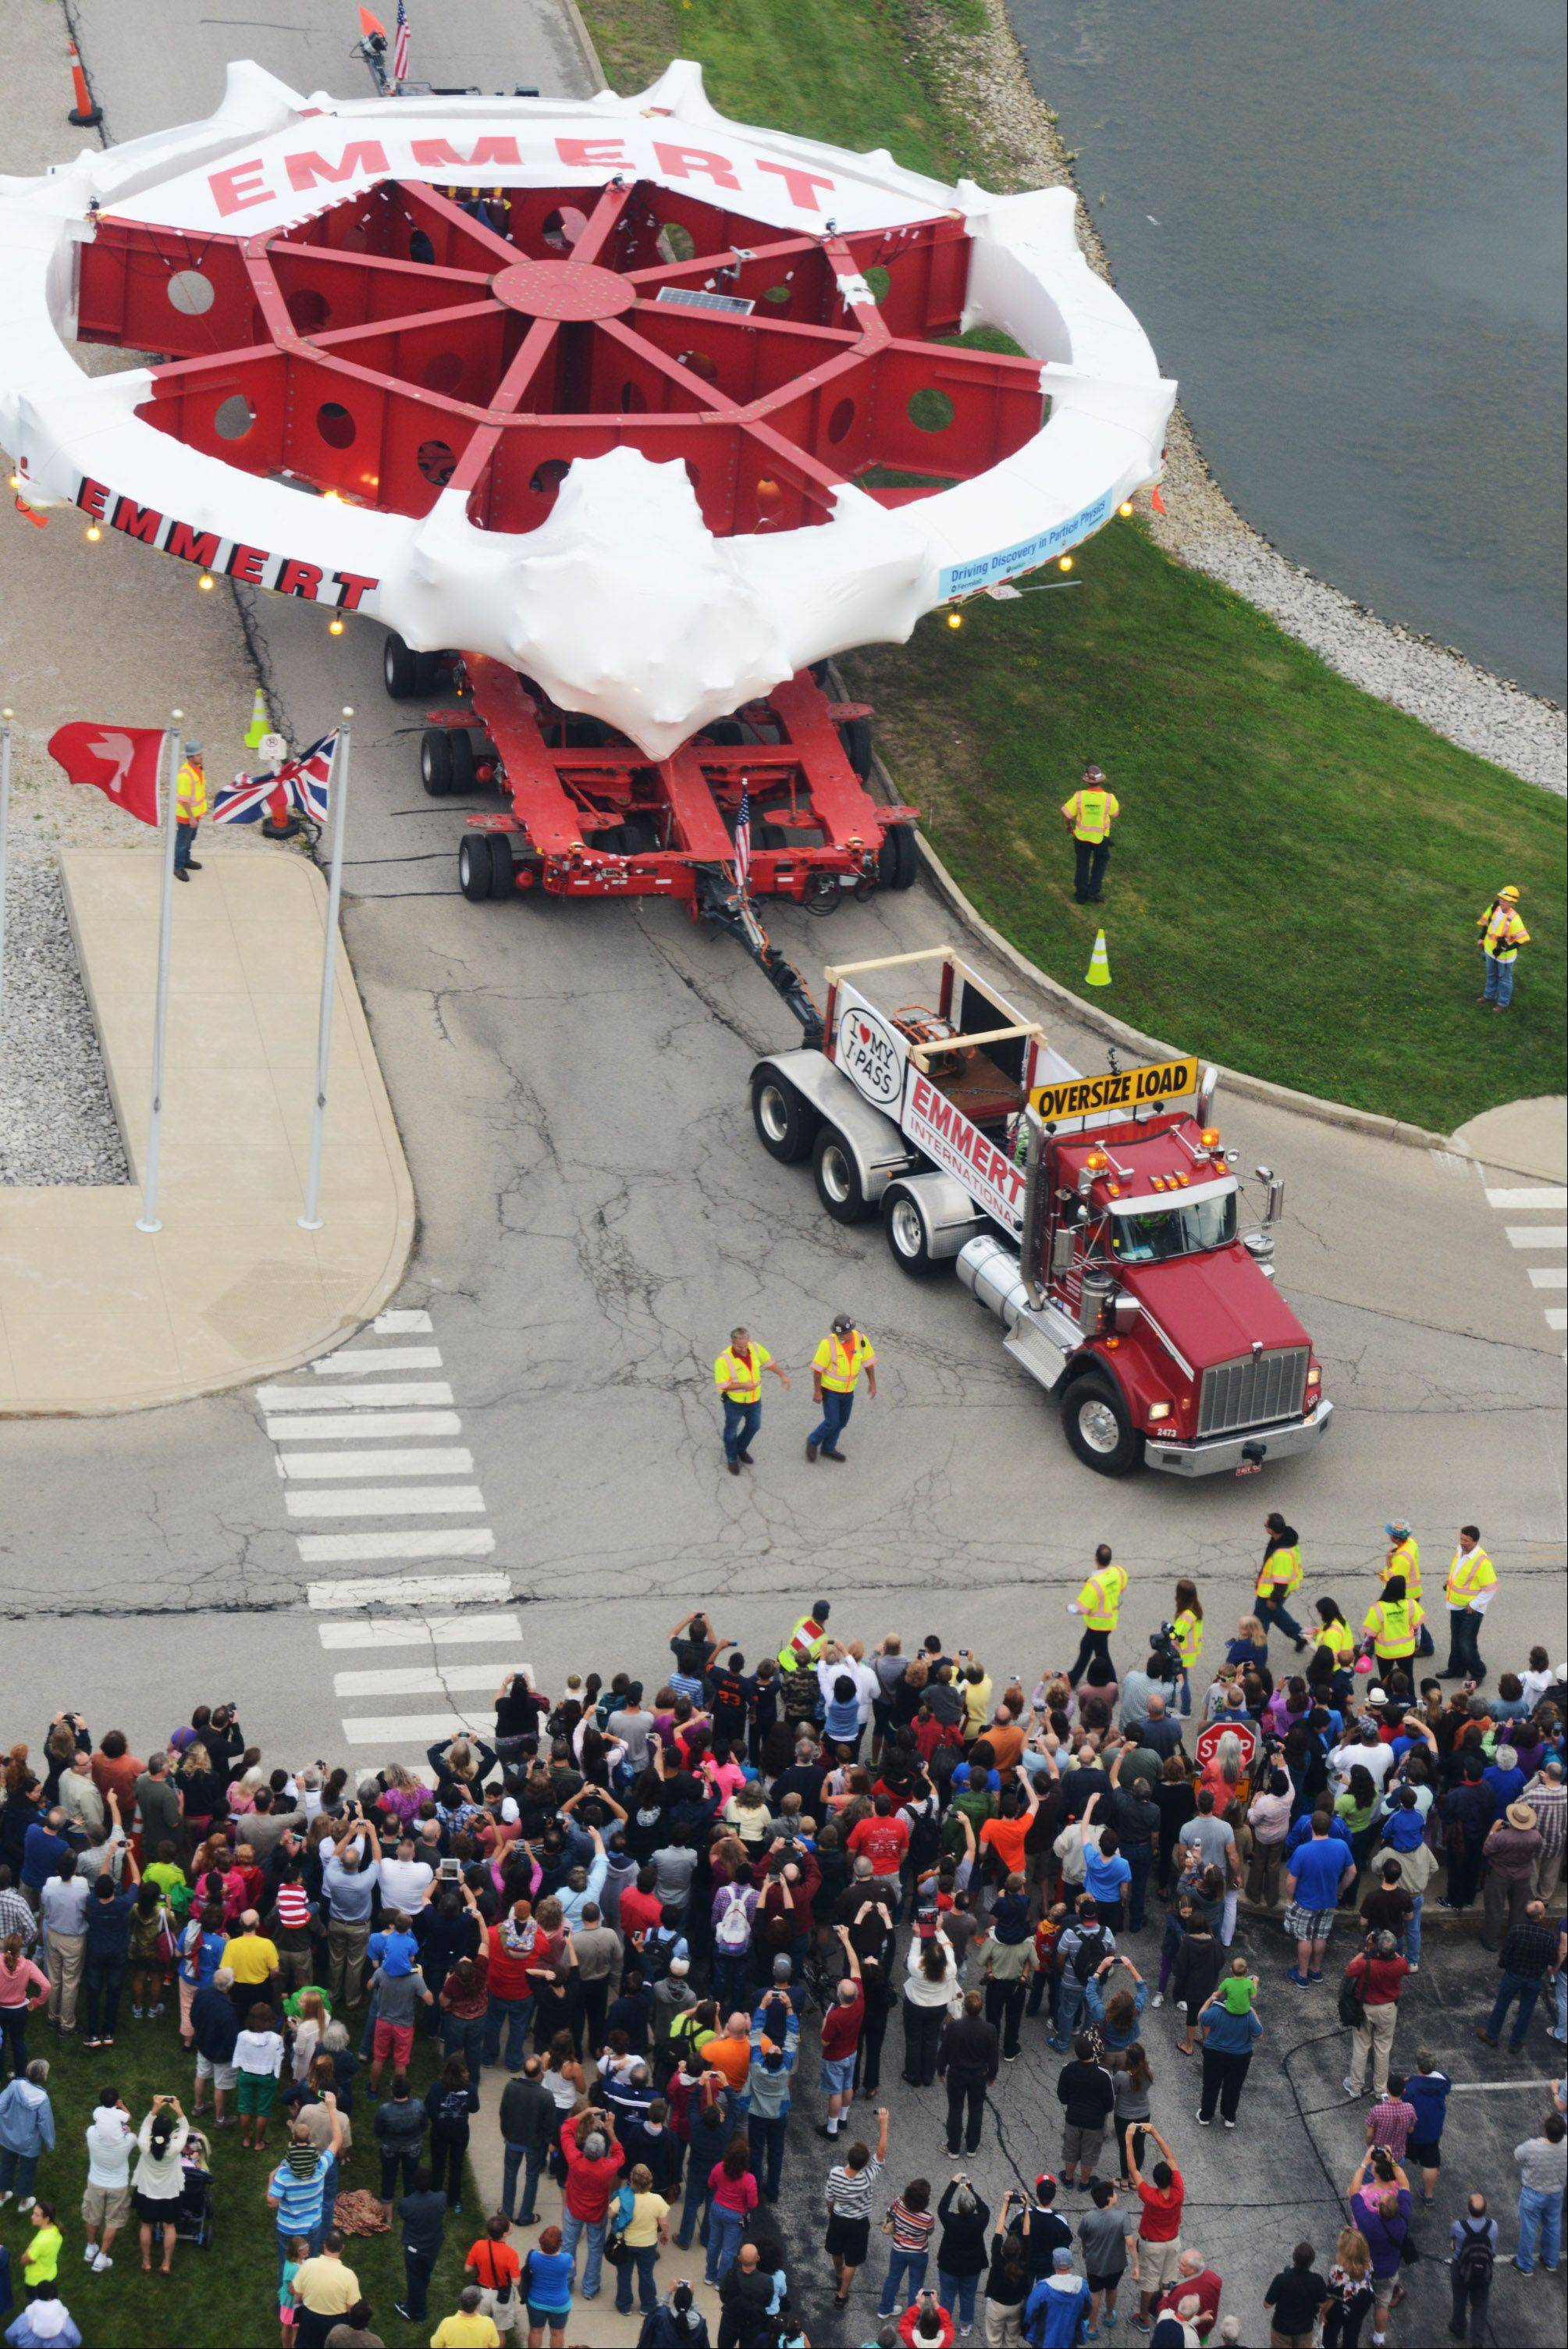 Emmalee Luckas/eluckas@dailyherald.comThe Mugon g-2 superconducting electromagnet ends its journey Friday, July 26 at Fermilab with a large crowd celebrating its arrival. Many people watched the electromagnet drive up to Wilson Hall from the fifteenth floor.